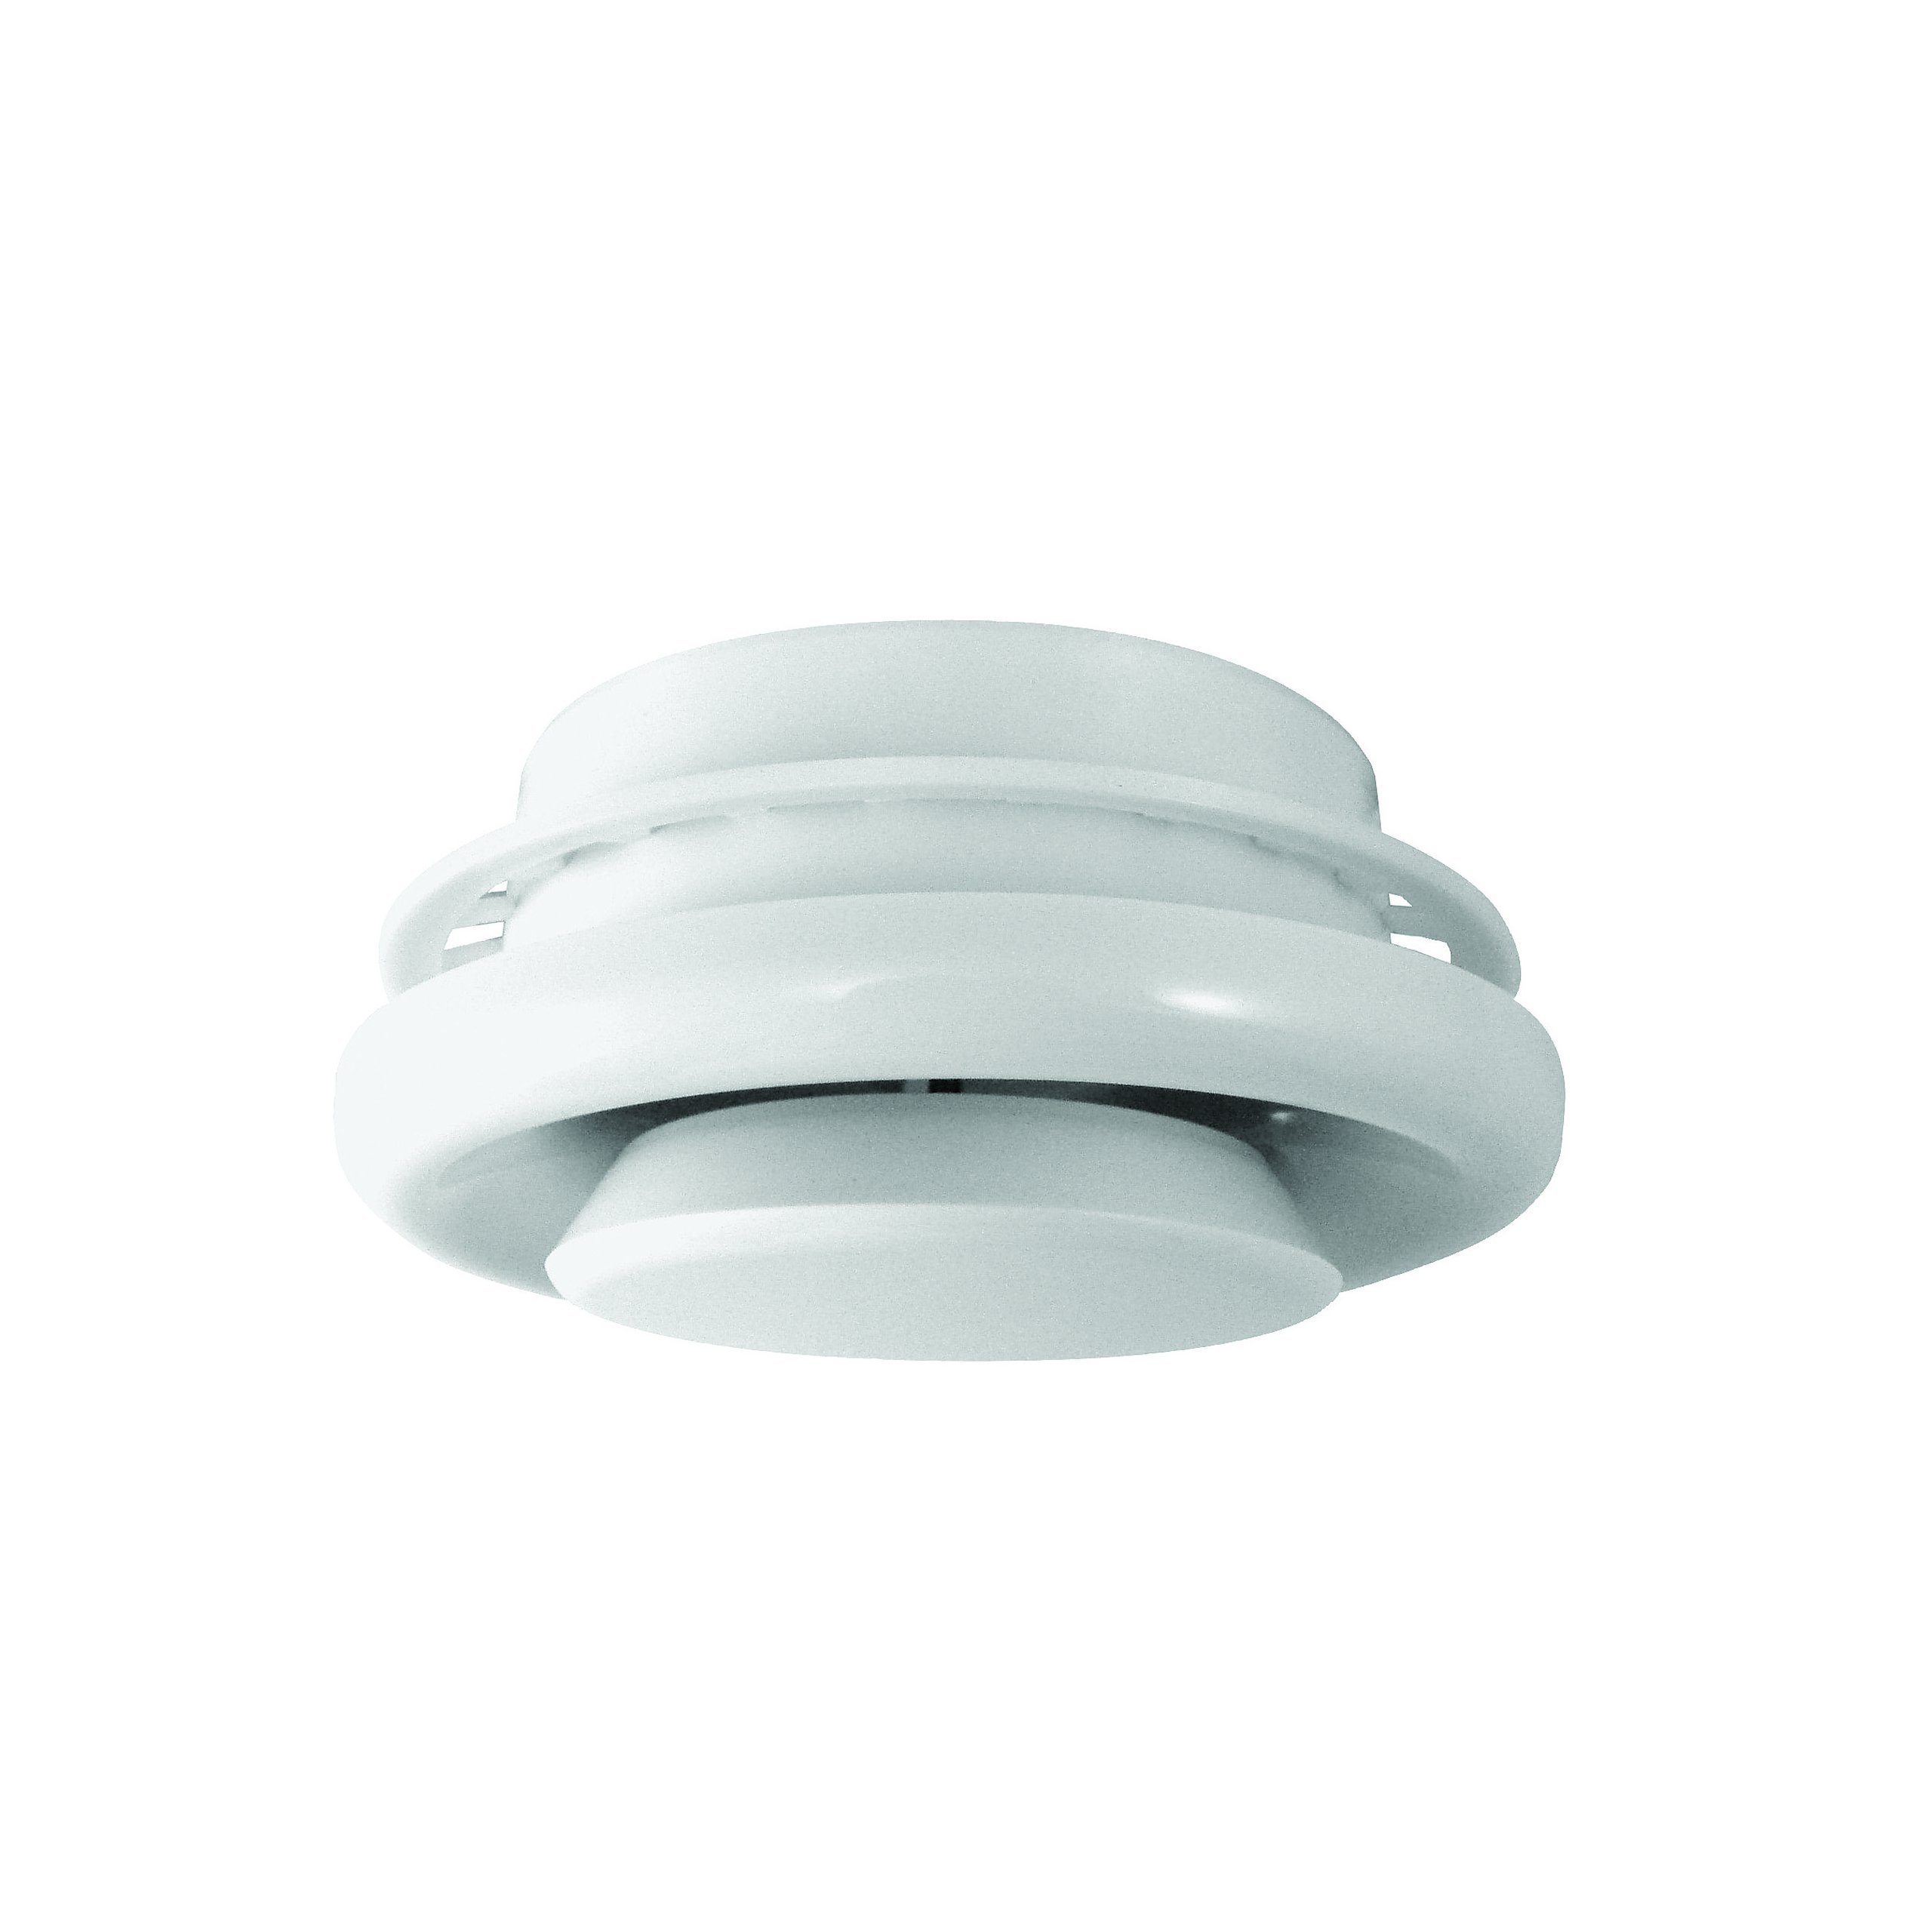 Deflecto Round Ceiling Diffuser, Adjustable, Requires No Studs for Installation, 4 Inches Dia., White (TFG4) by Deflecto